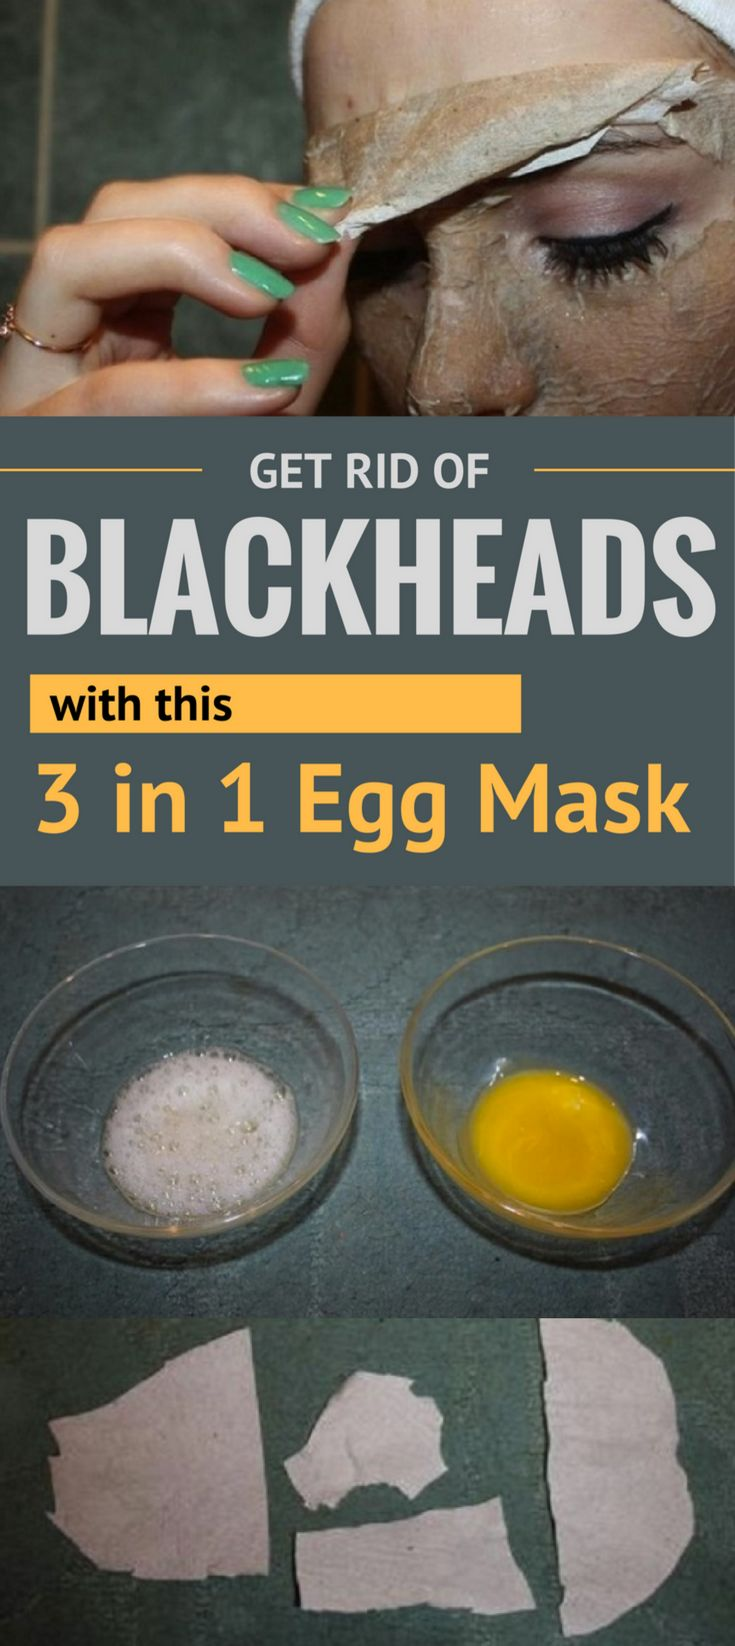 Get Rid of Blackheads with this 3 in 1 Egg Mask - TheBeautyMania.net